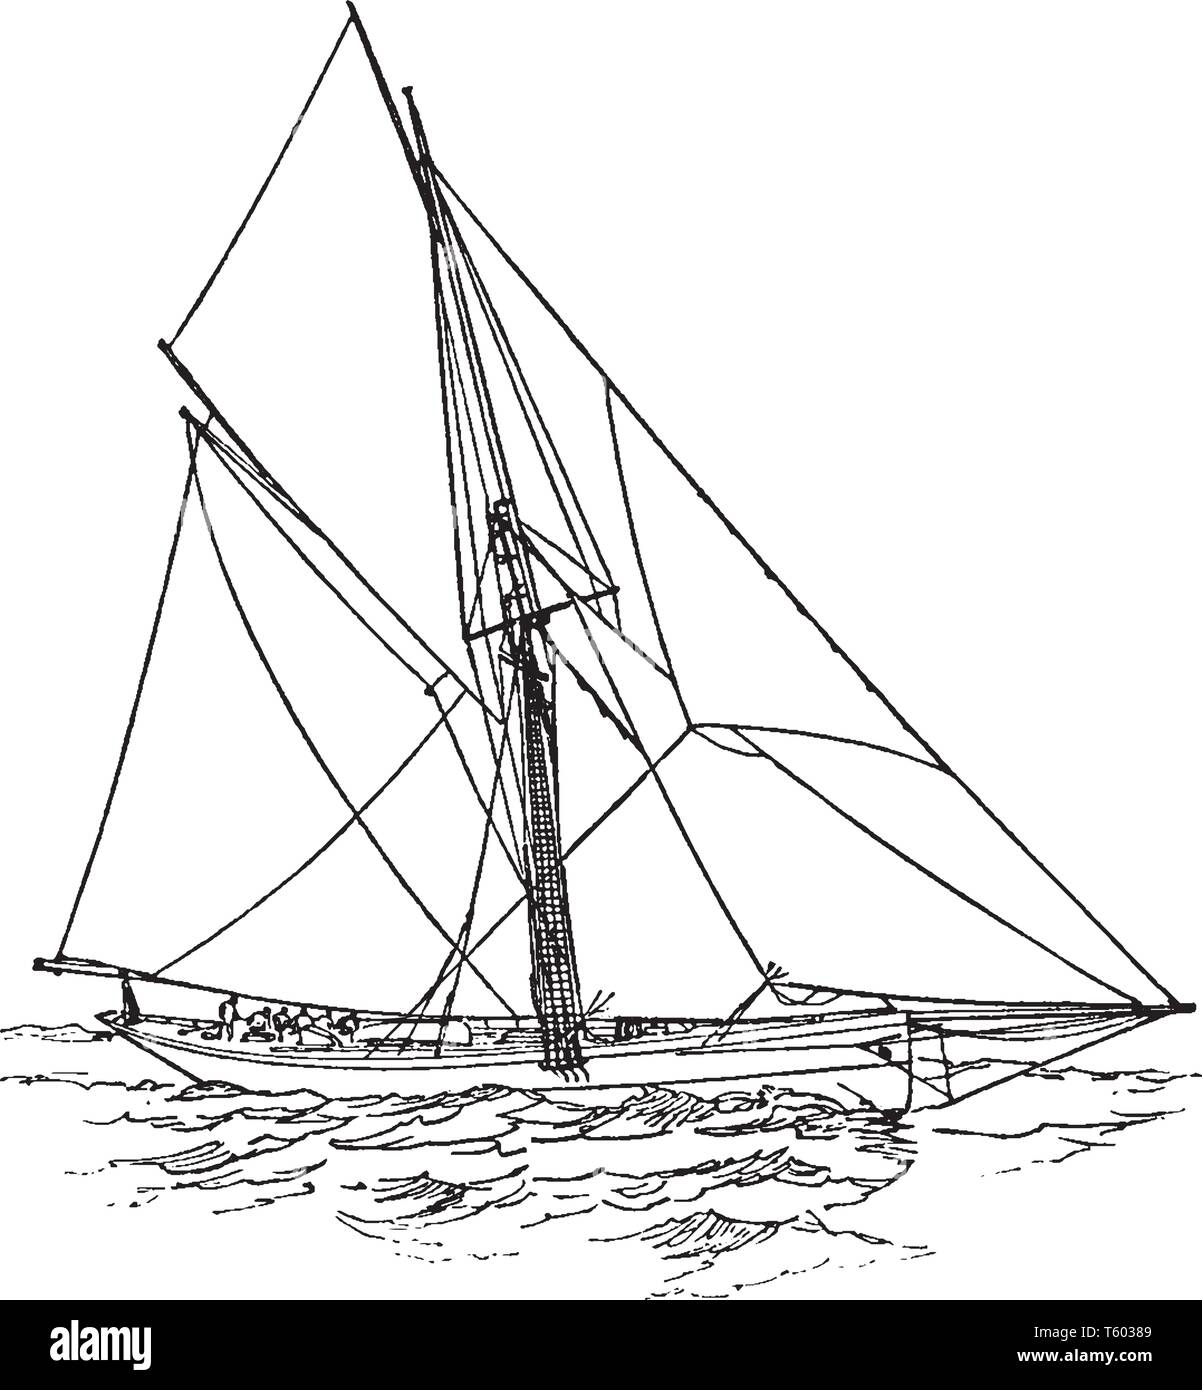 Cutter Yacht is typically a small but in some cases a medium sized watercraft designed for speed rather than for capacity, vintage line drawing or eng - Stock Vector